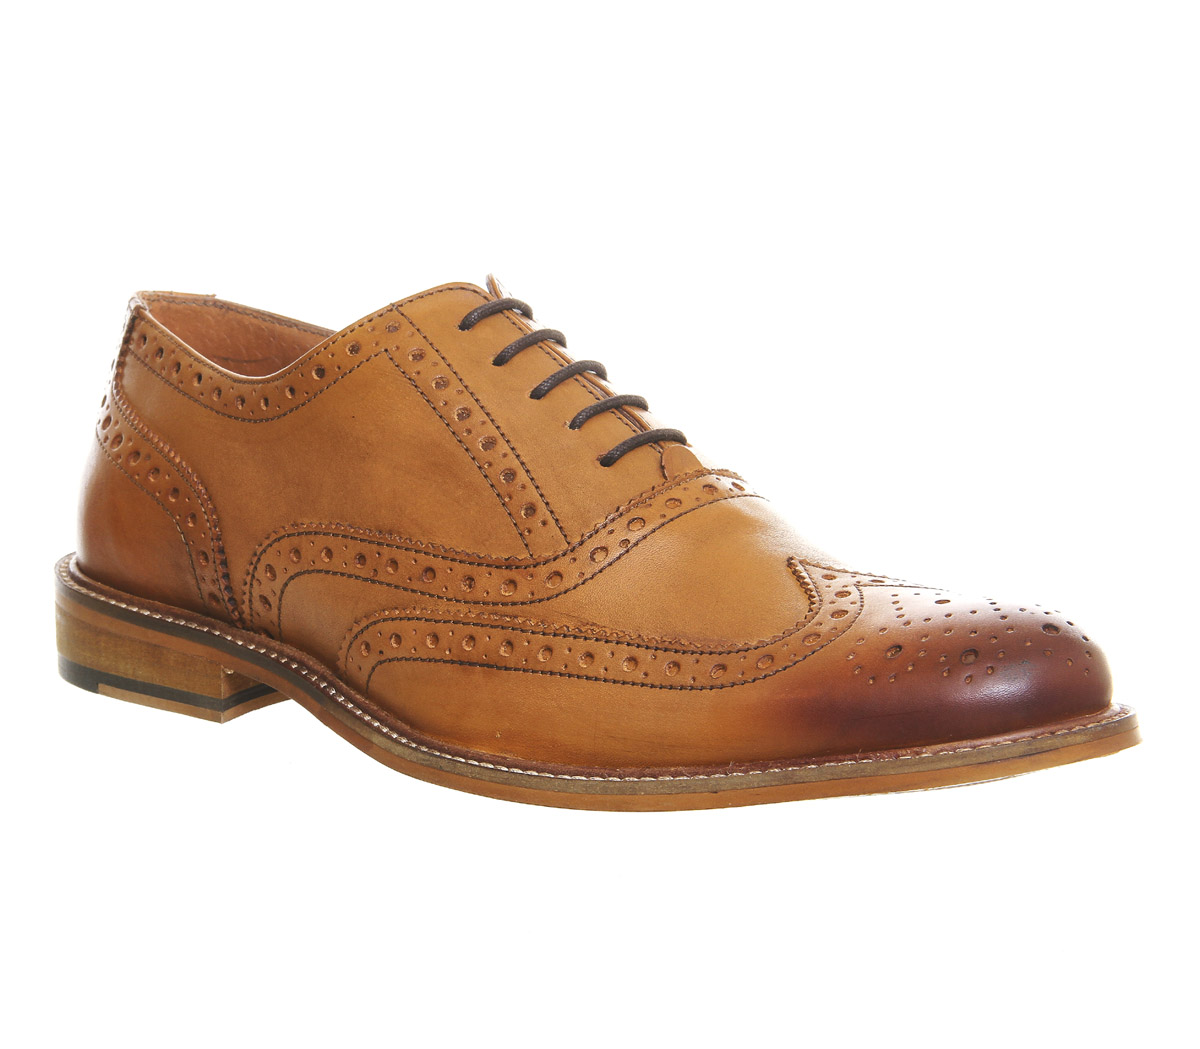 Mens Office Bhatti Brogues Tan Leather Formal Shoes Ebay